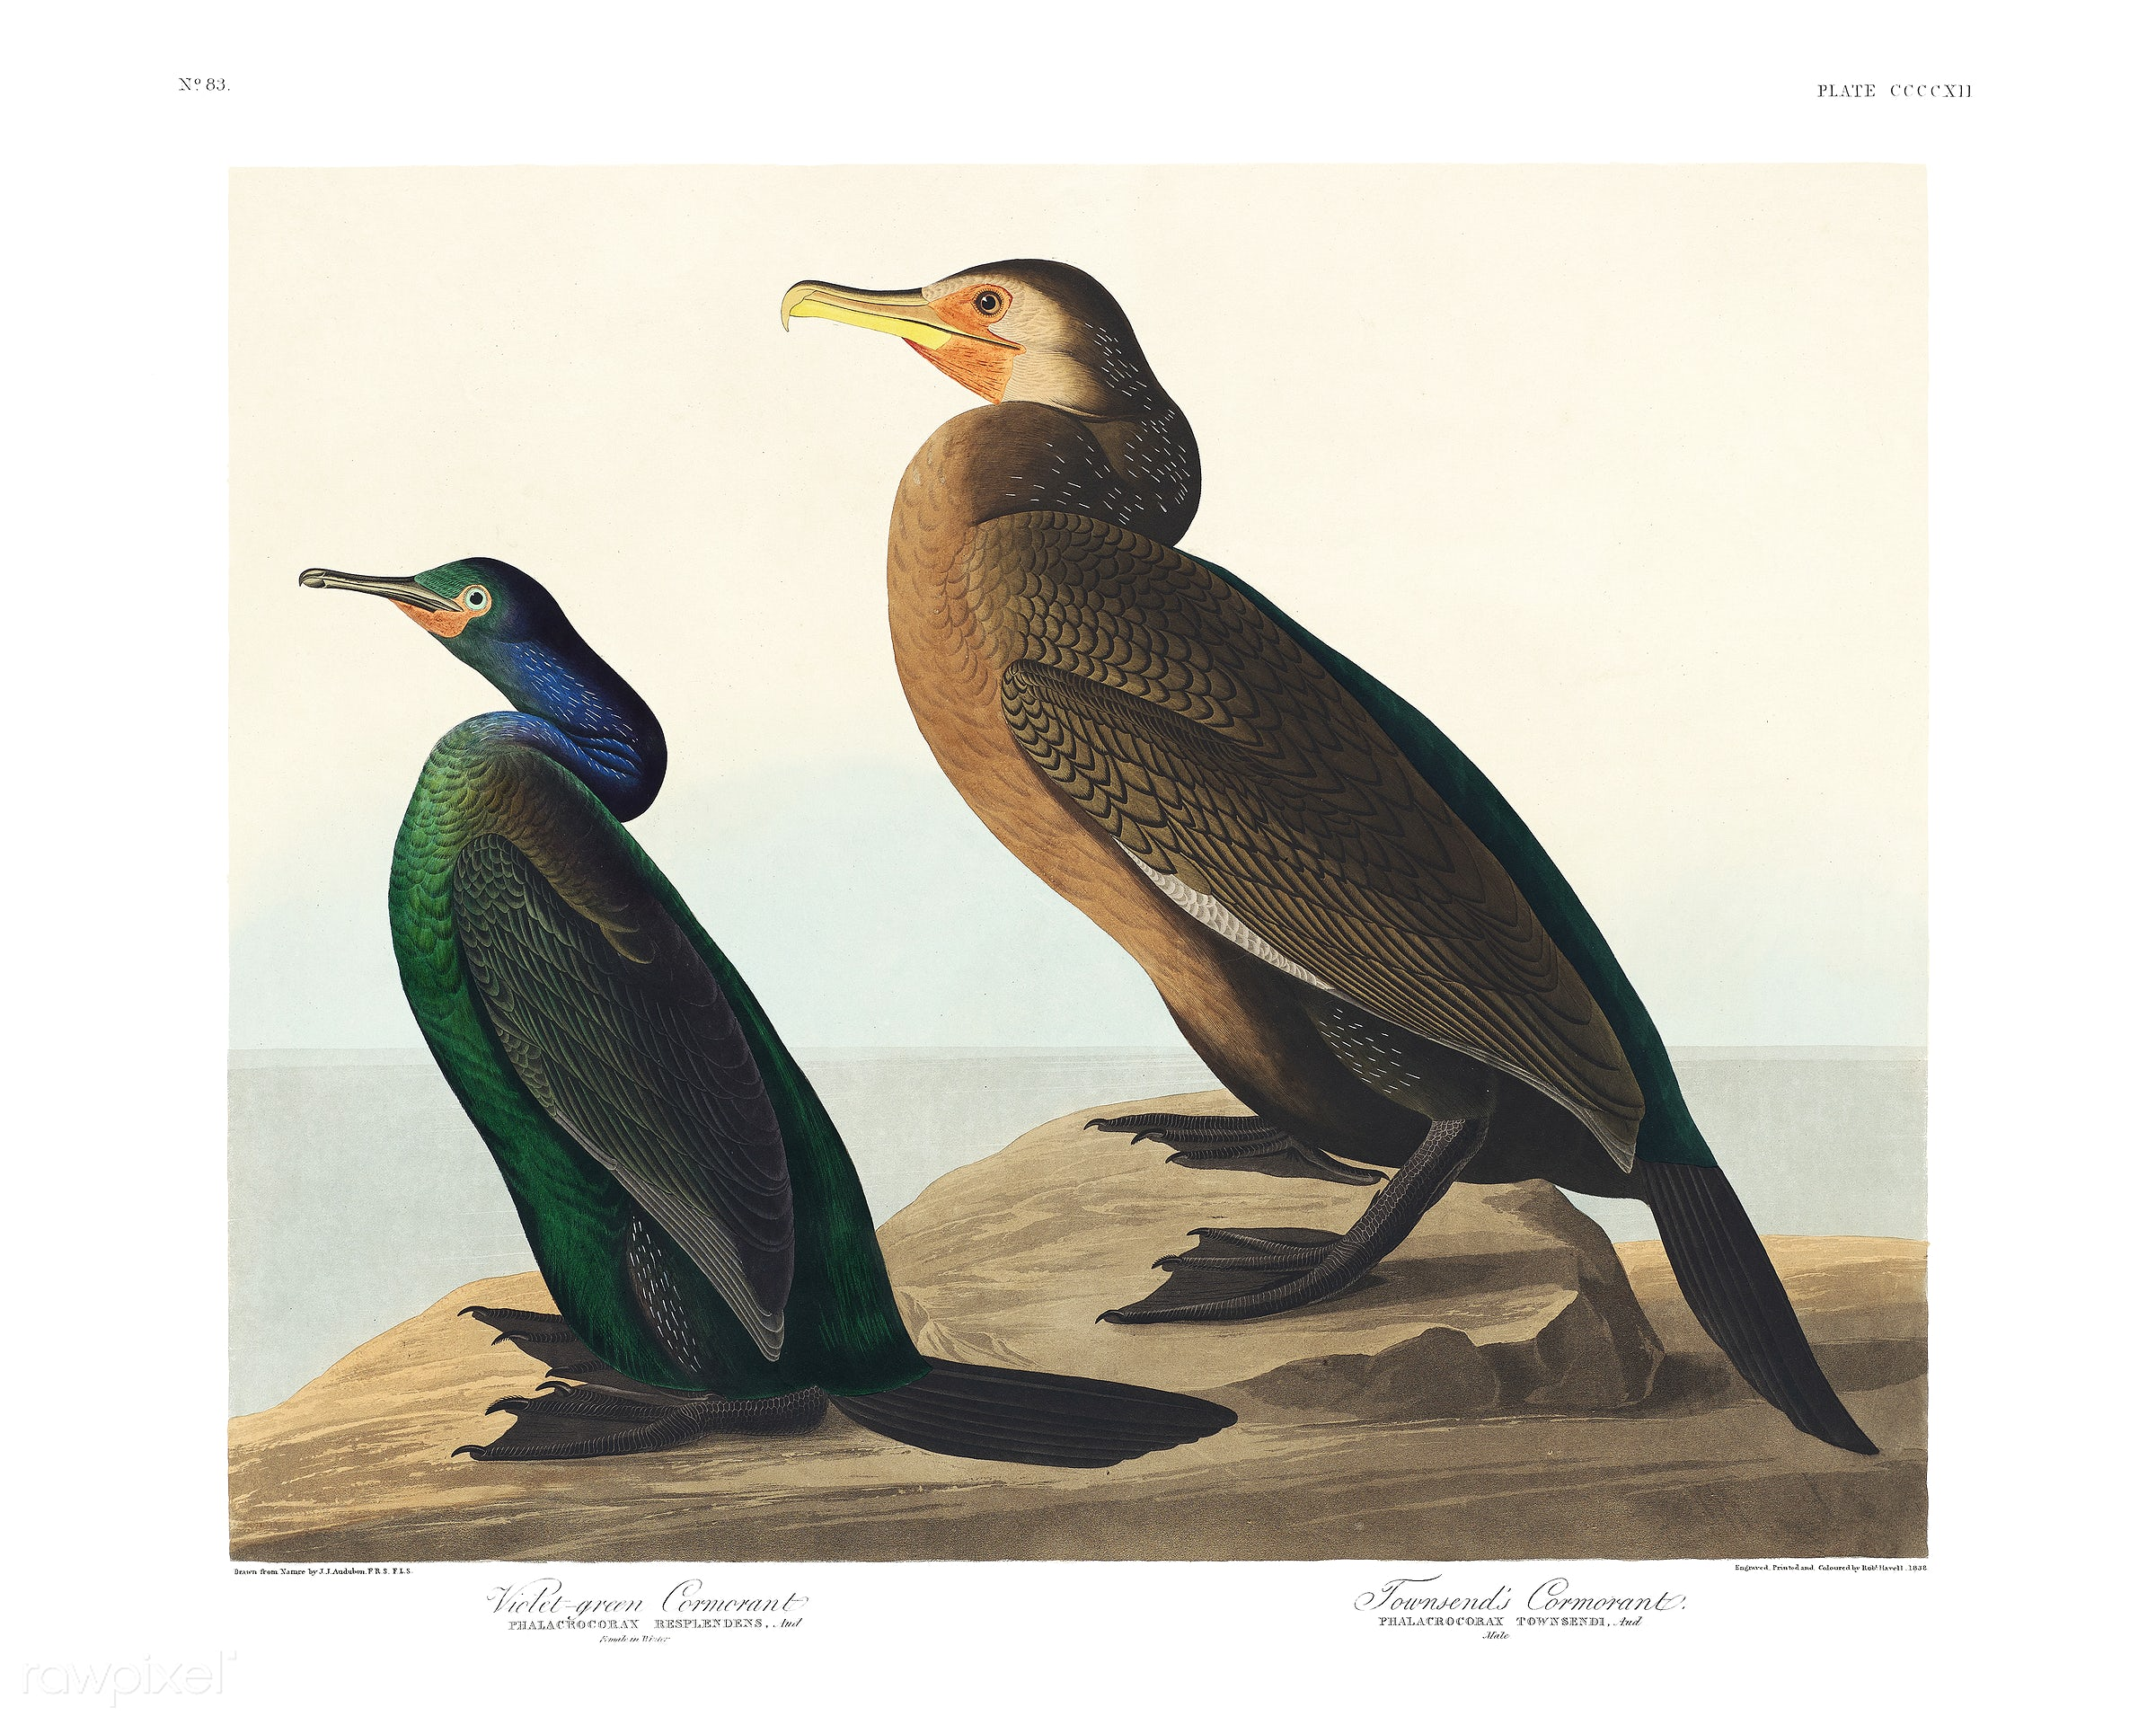 Violet-green Cormorant and Townsend's Cormorant from Birds of America (1827) illustrated by John James Audubon (1785 -...